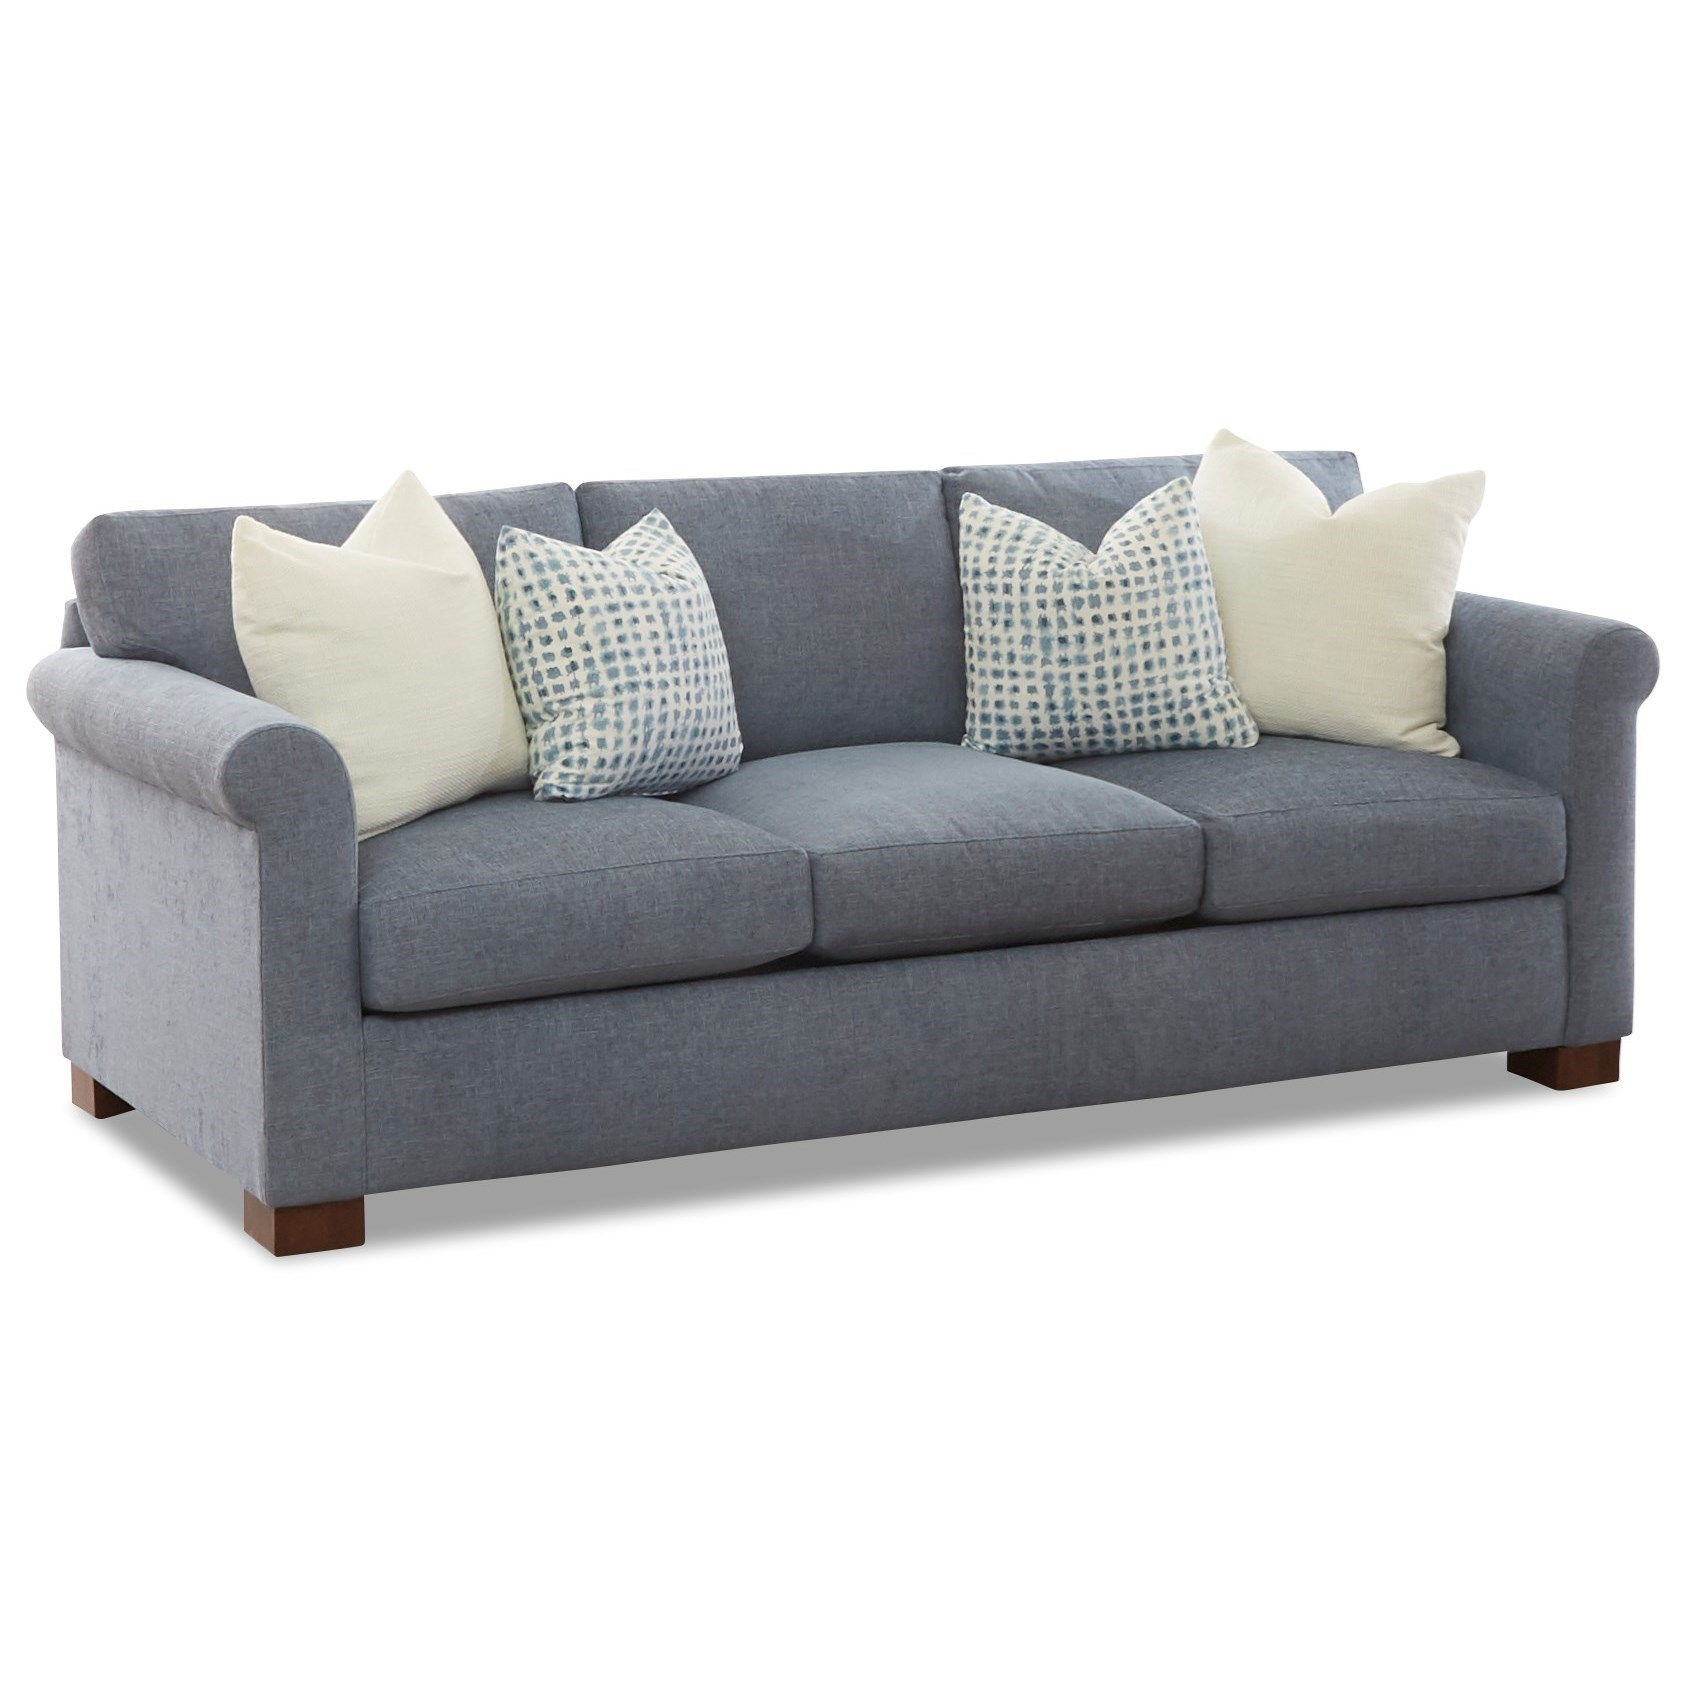 Bodhi Sofa by Klaussner at Northeast Factory Direct